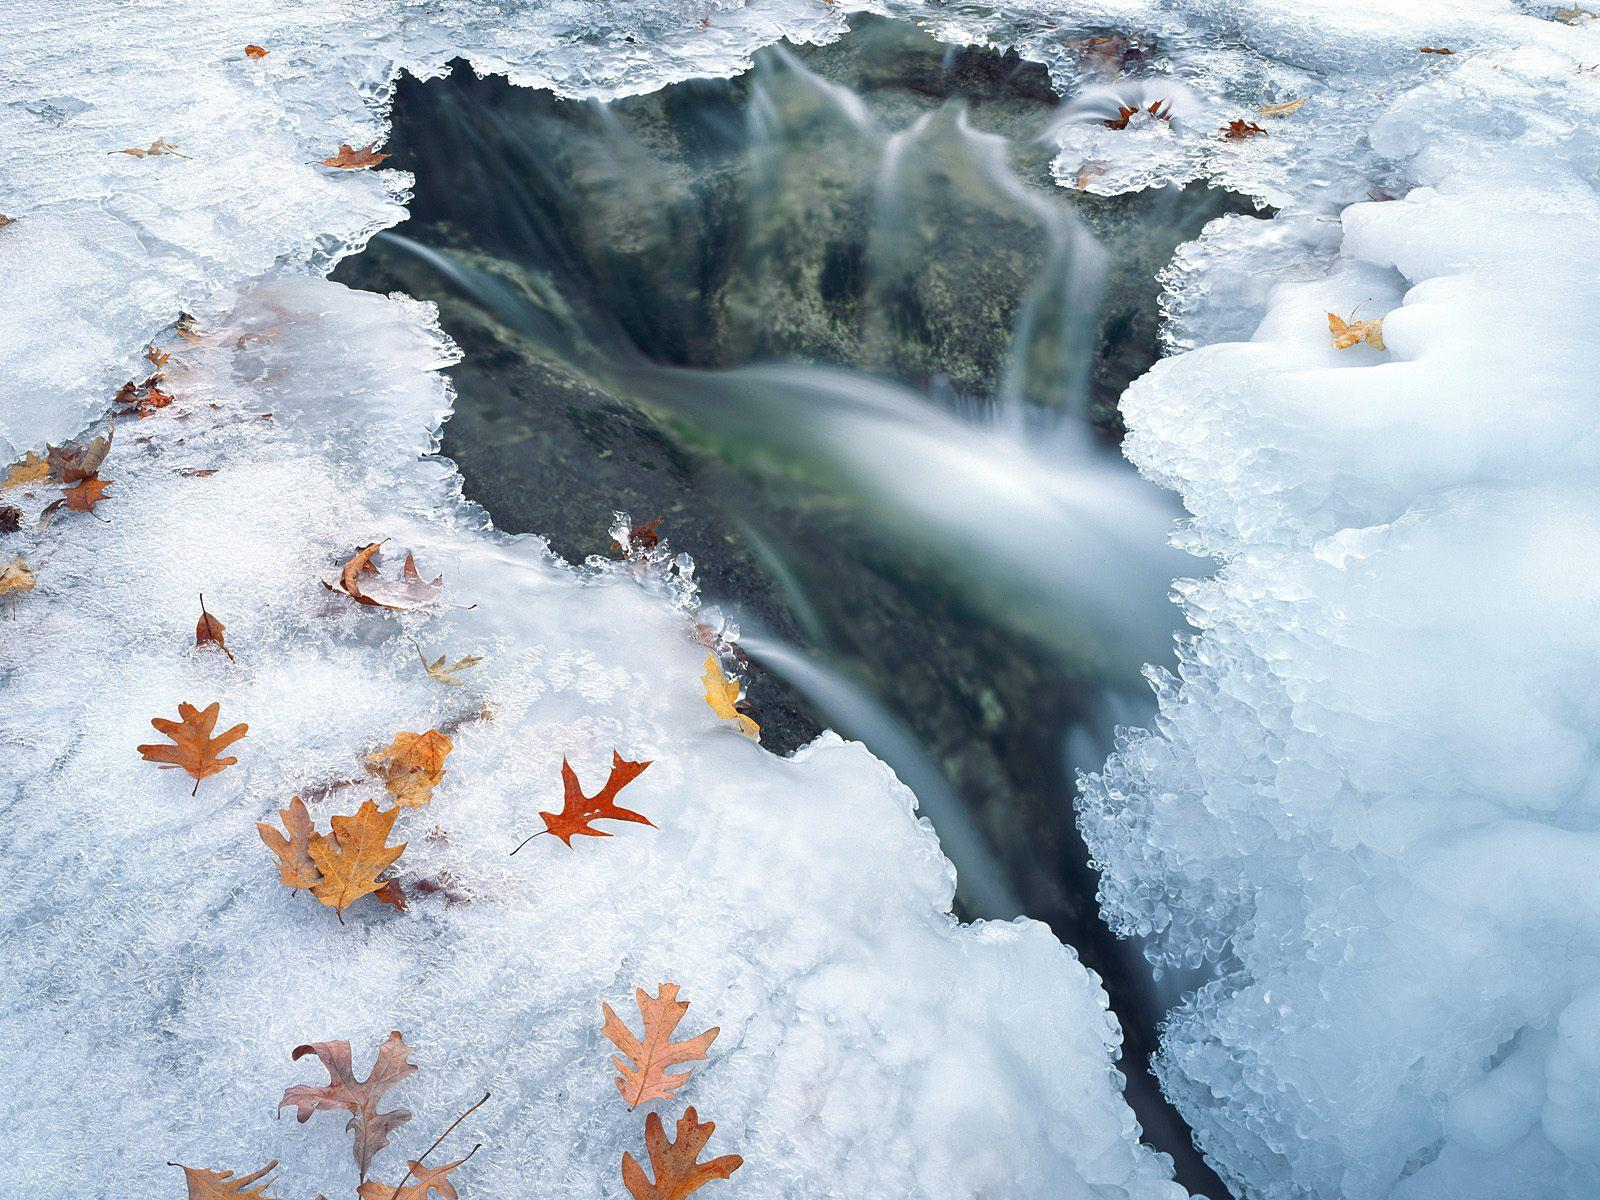 http://4.bp.blogspot.com/_2UbsSBz9ckE/SvI4SWcqYlI/AAAAAAAAAVE/TcvStGwe02Y/s1600/winter+high+definition+wallpapers+1.jpg